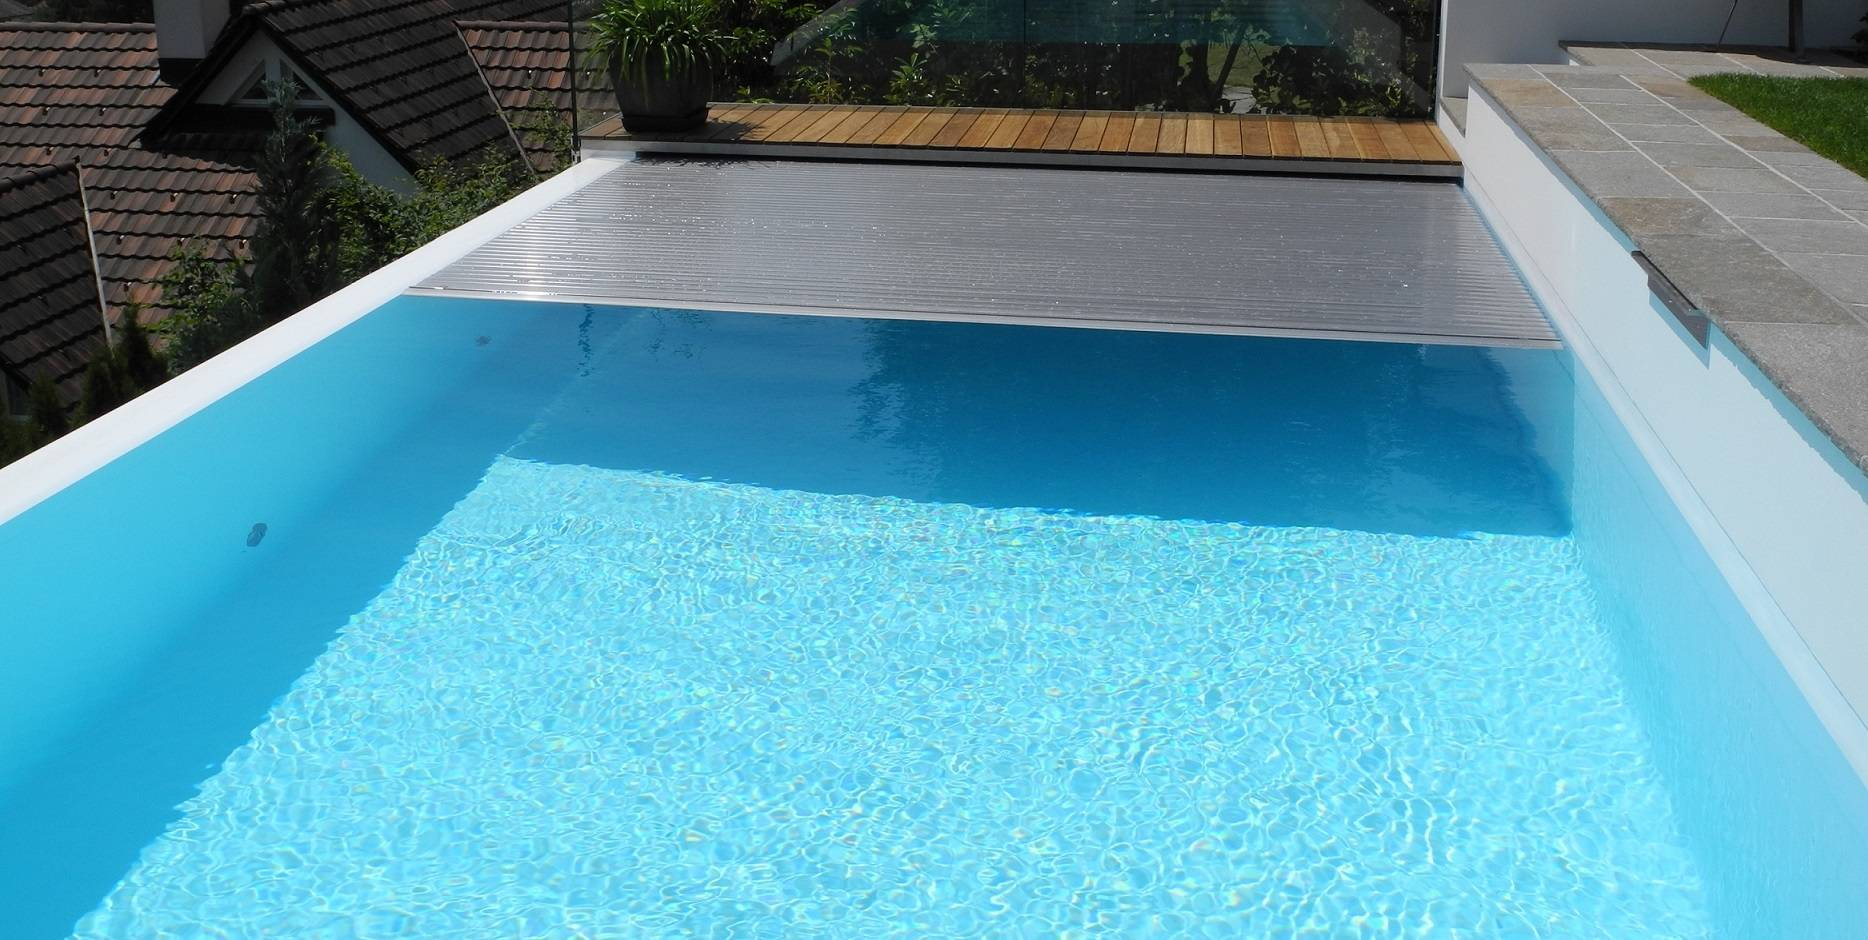 Your pool, our solution.